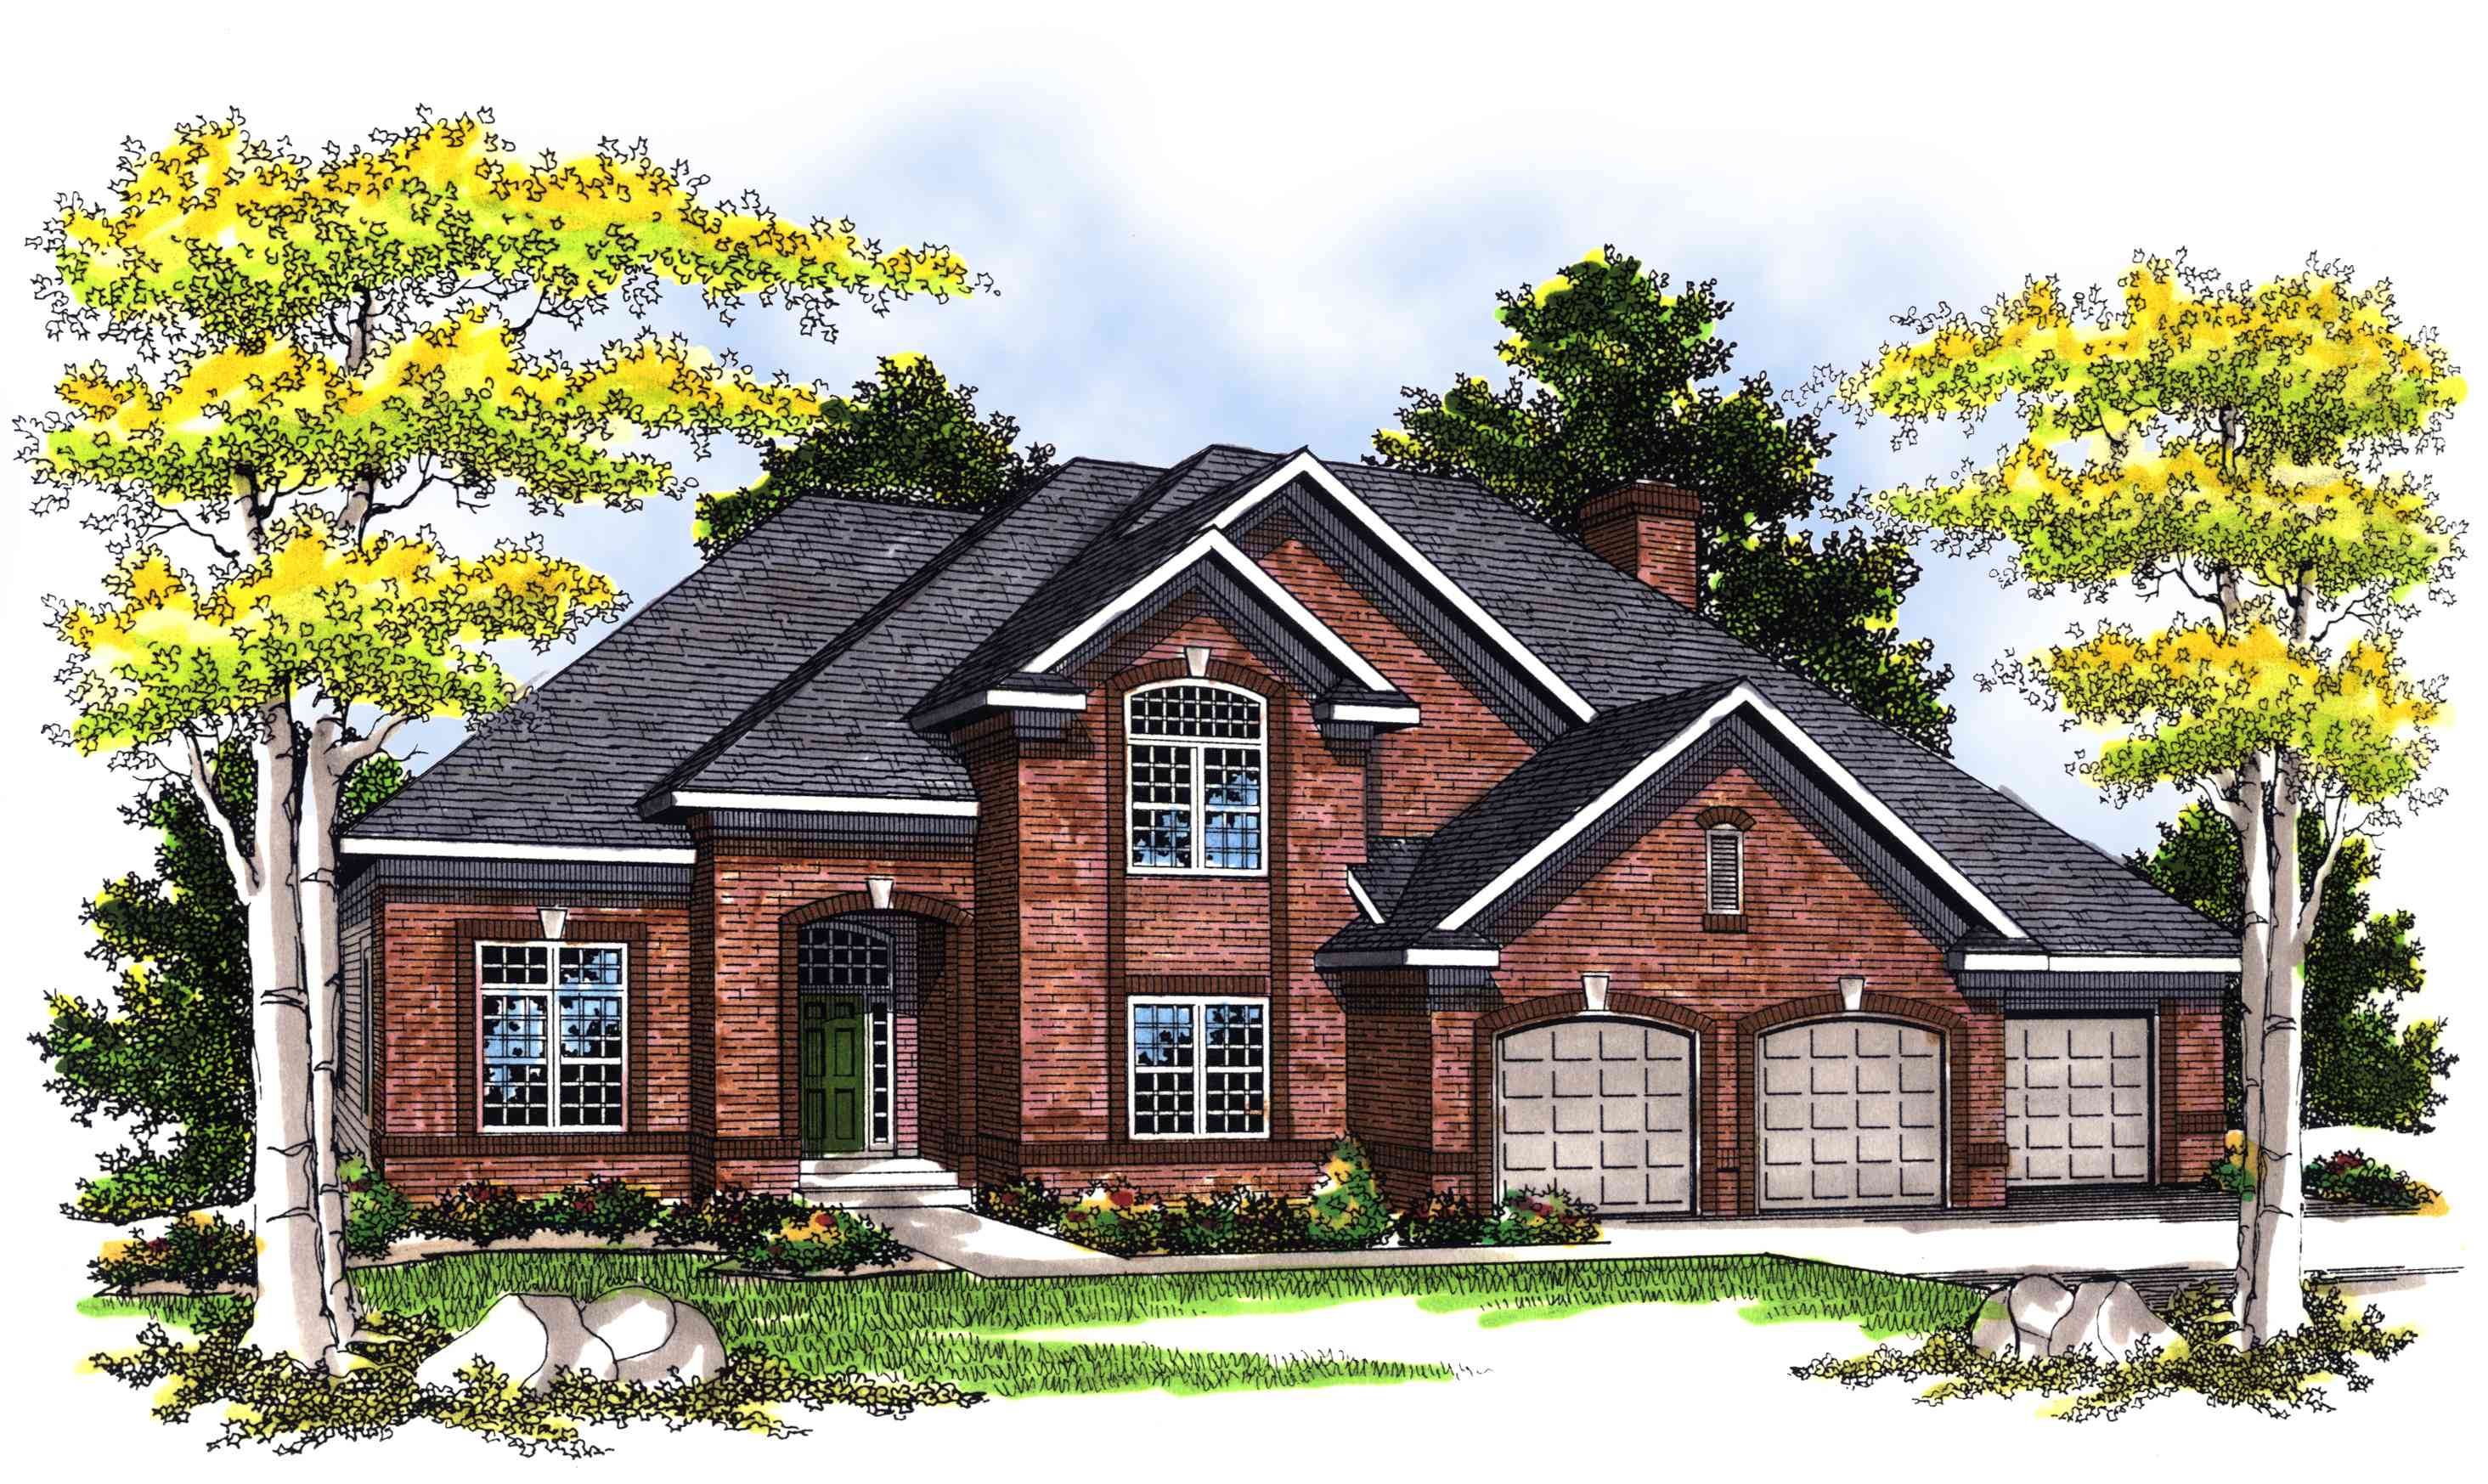 Traditional 2 story 4 bed home plan 89440ah for Traditional house plans two story